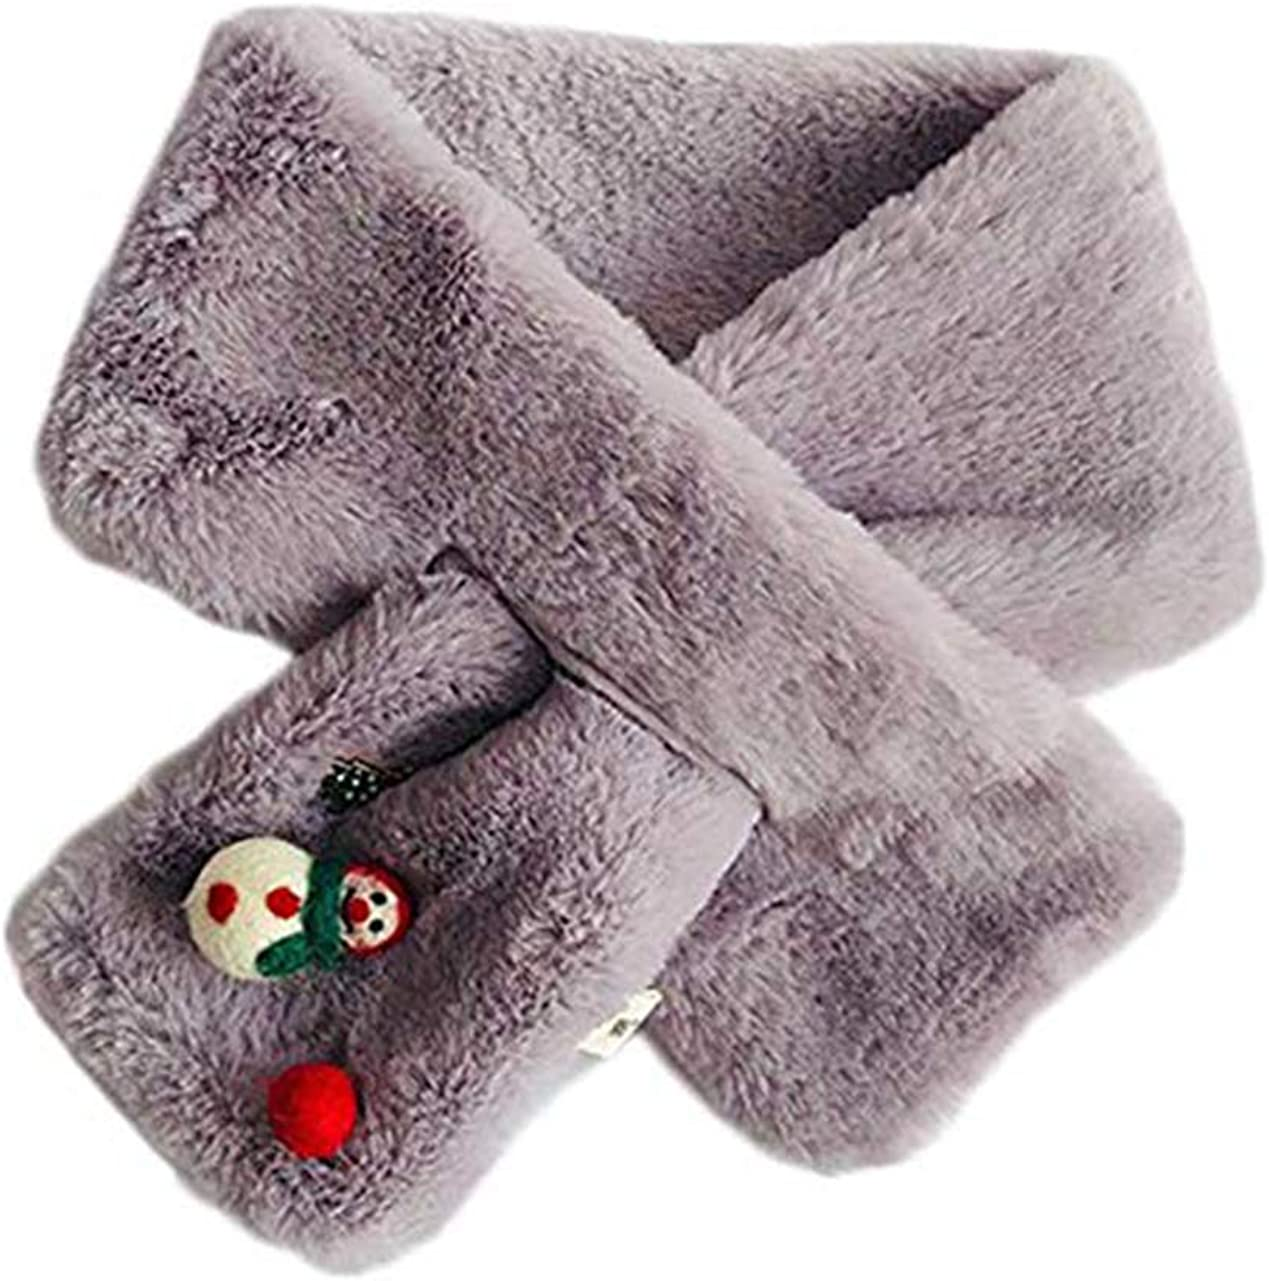 Unisex Kids Warm Neck Scarves Soft Furry Loop Scarf One Size Fits Most for Toddlers Little Kids Big Kids Christmas Gift